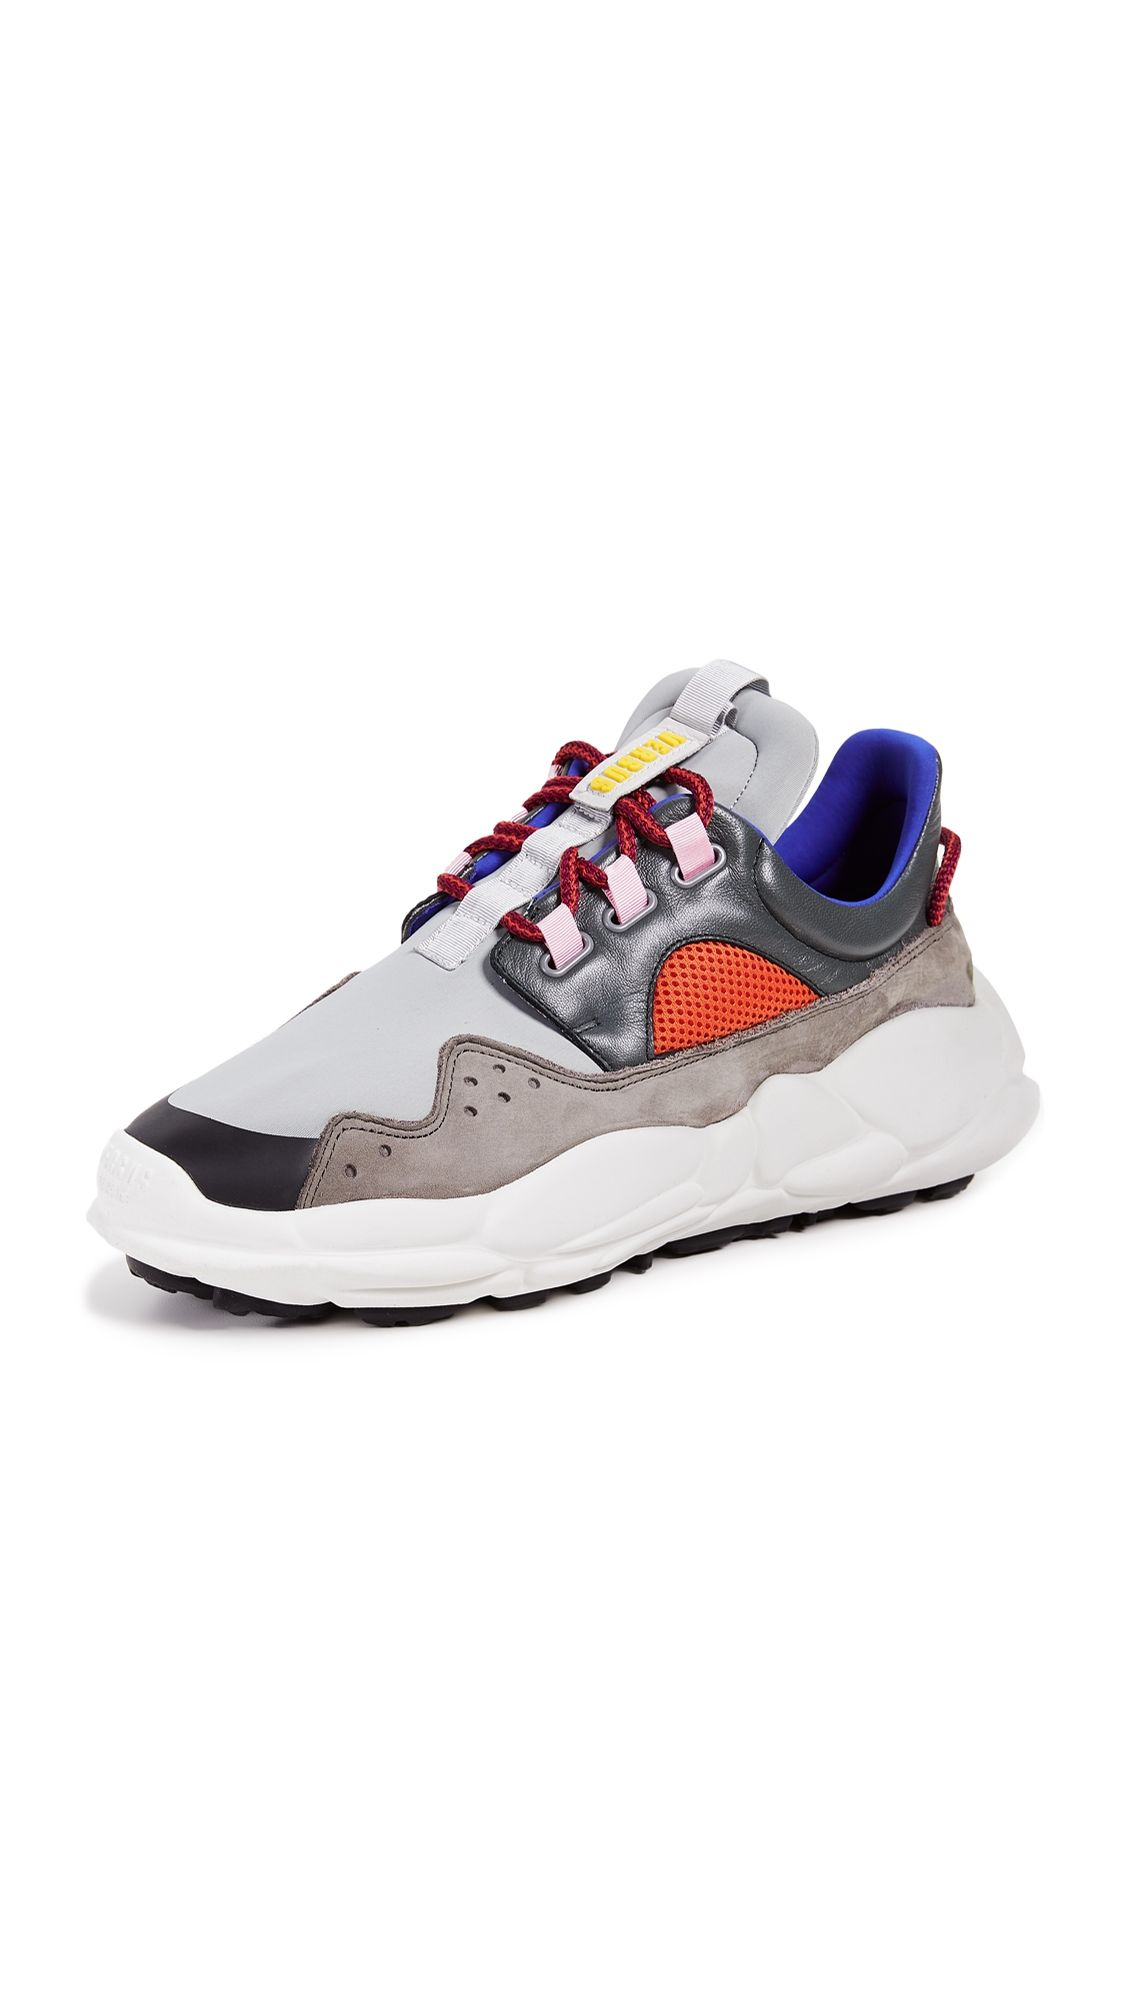 a1db9140c6a5 VERSUS MIXED MEDIA RUNNERS.  versus  shoes